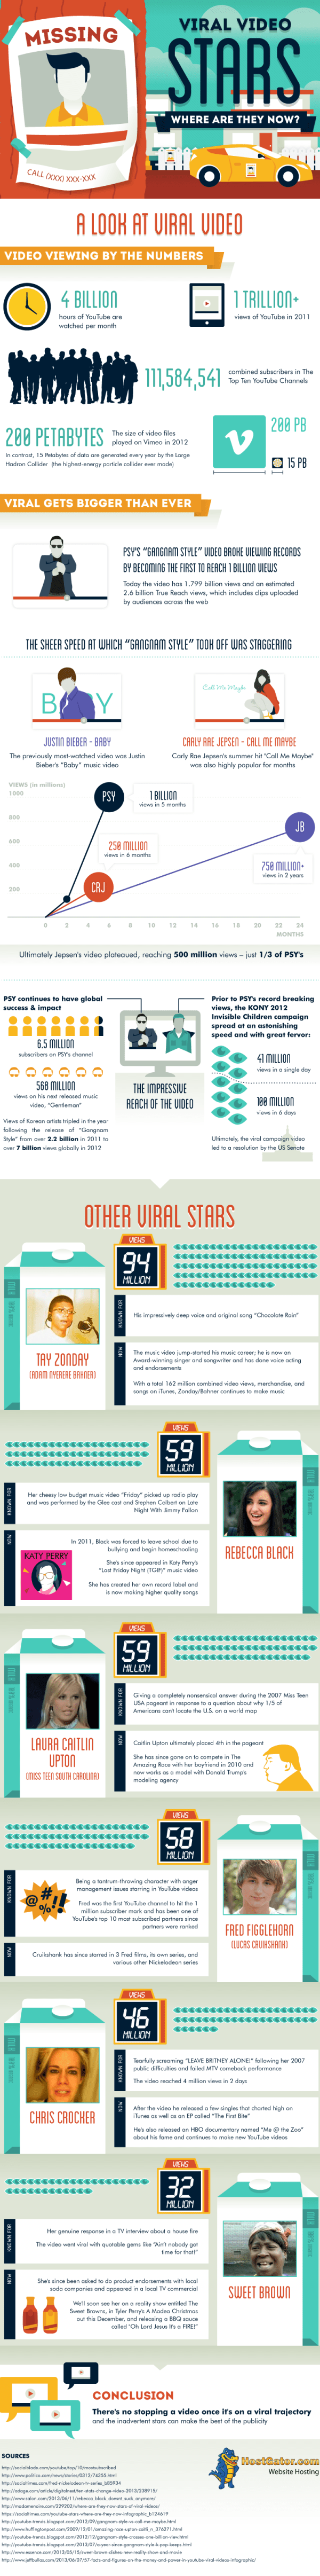 Viral-video-stars-where-are-they-now-infographic